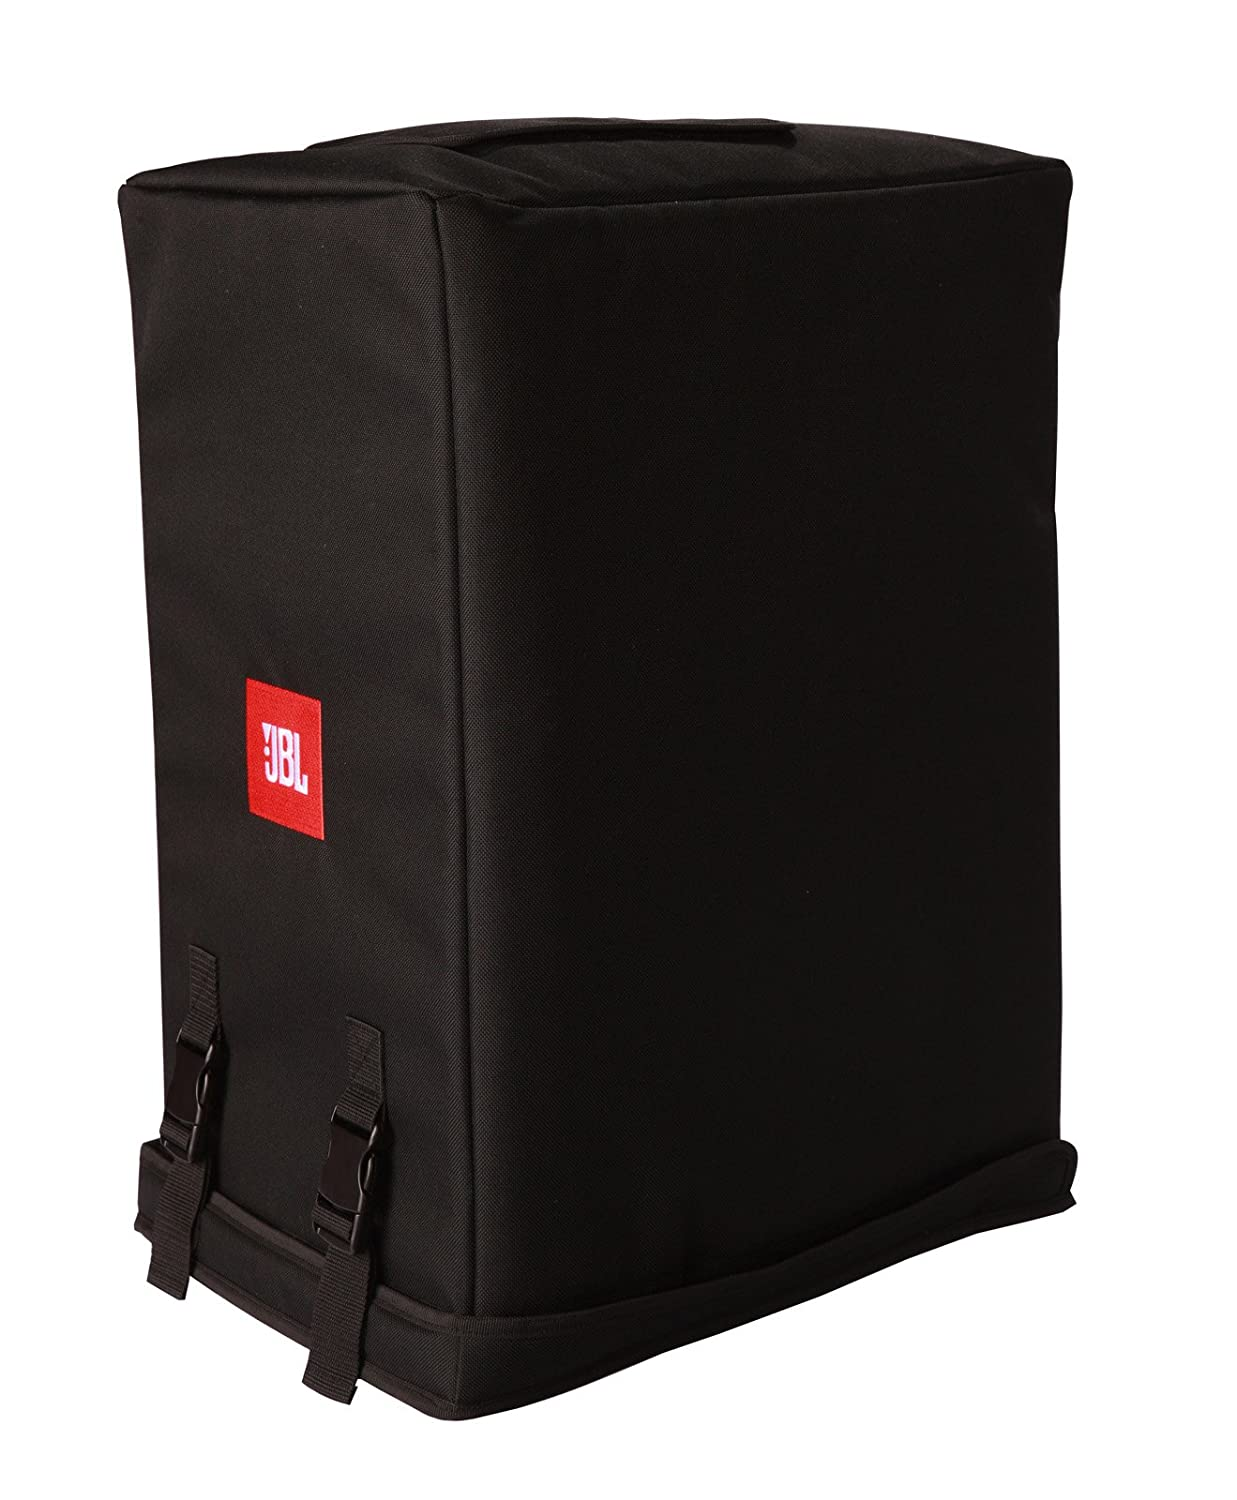 JBL Deluxe Padded Protective Cover for VRX932LA-1 Speaker - Black (VRX932LA-1-CVR) Gator Cases